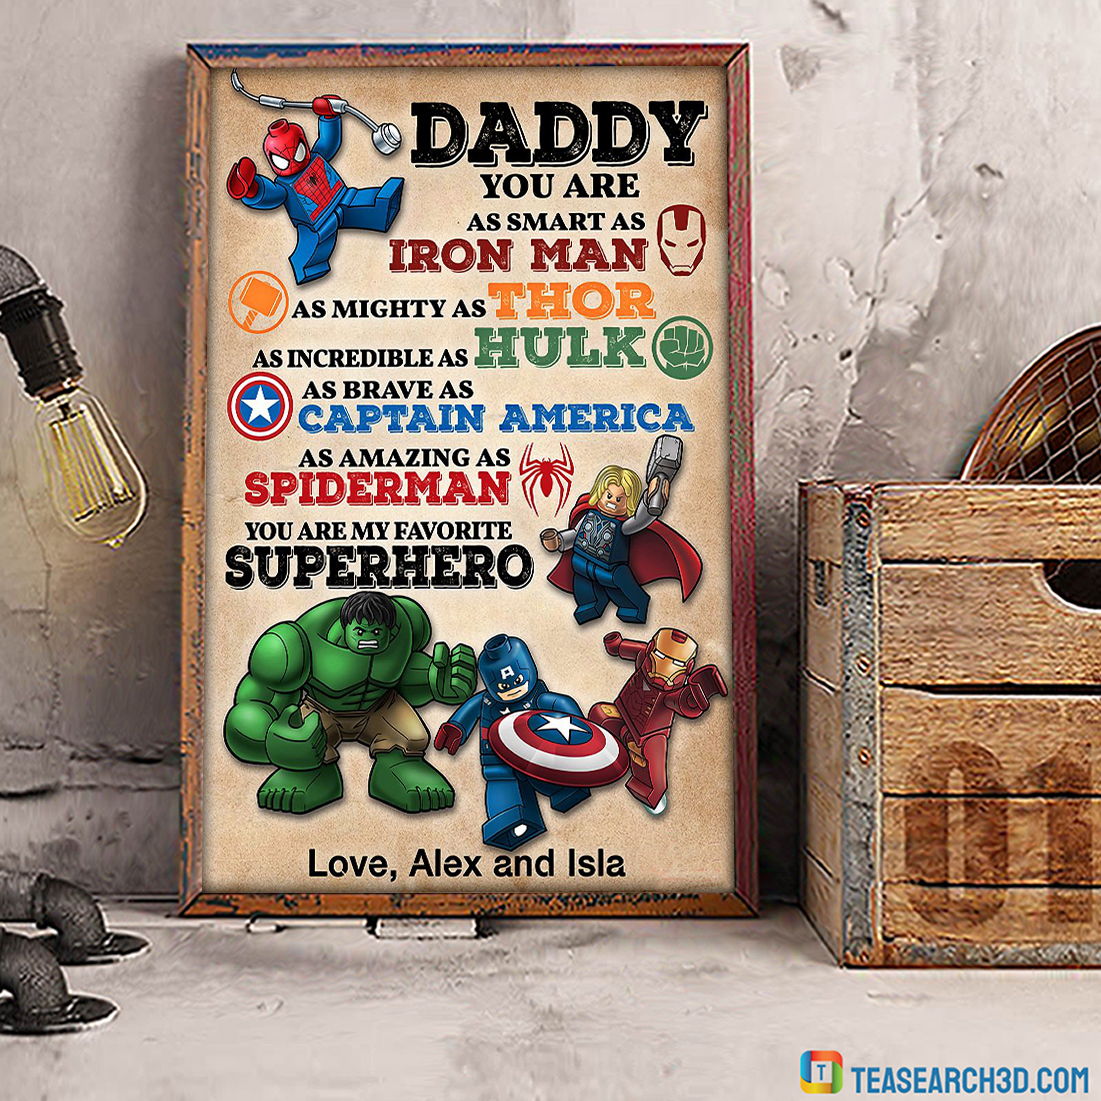 Personalized custom name daddy superhero avengers poster A1